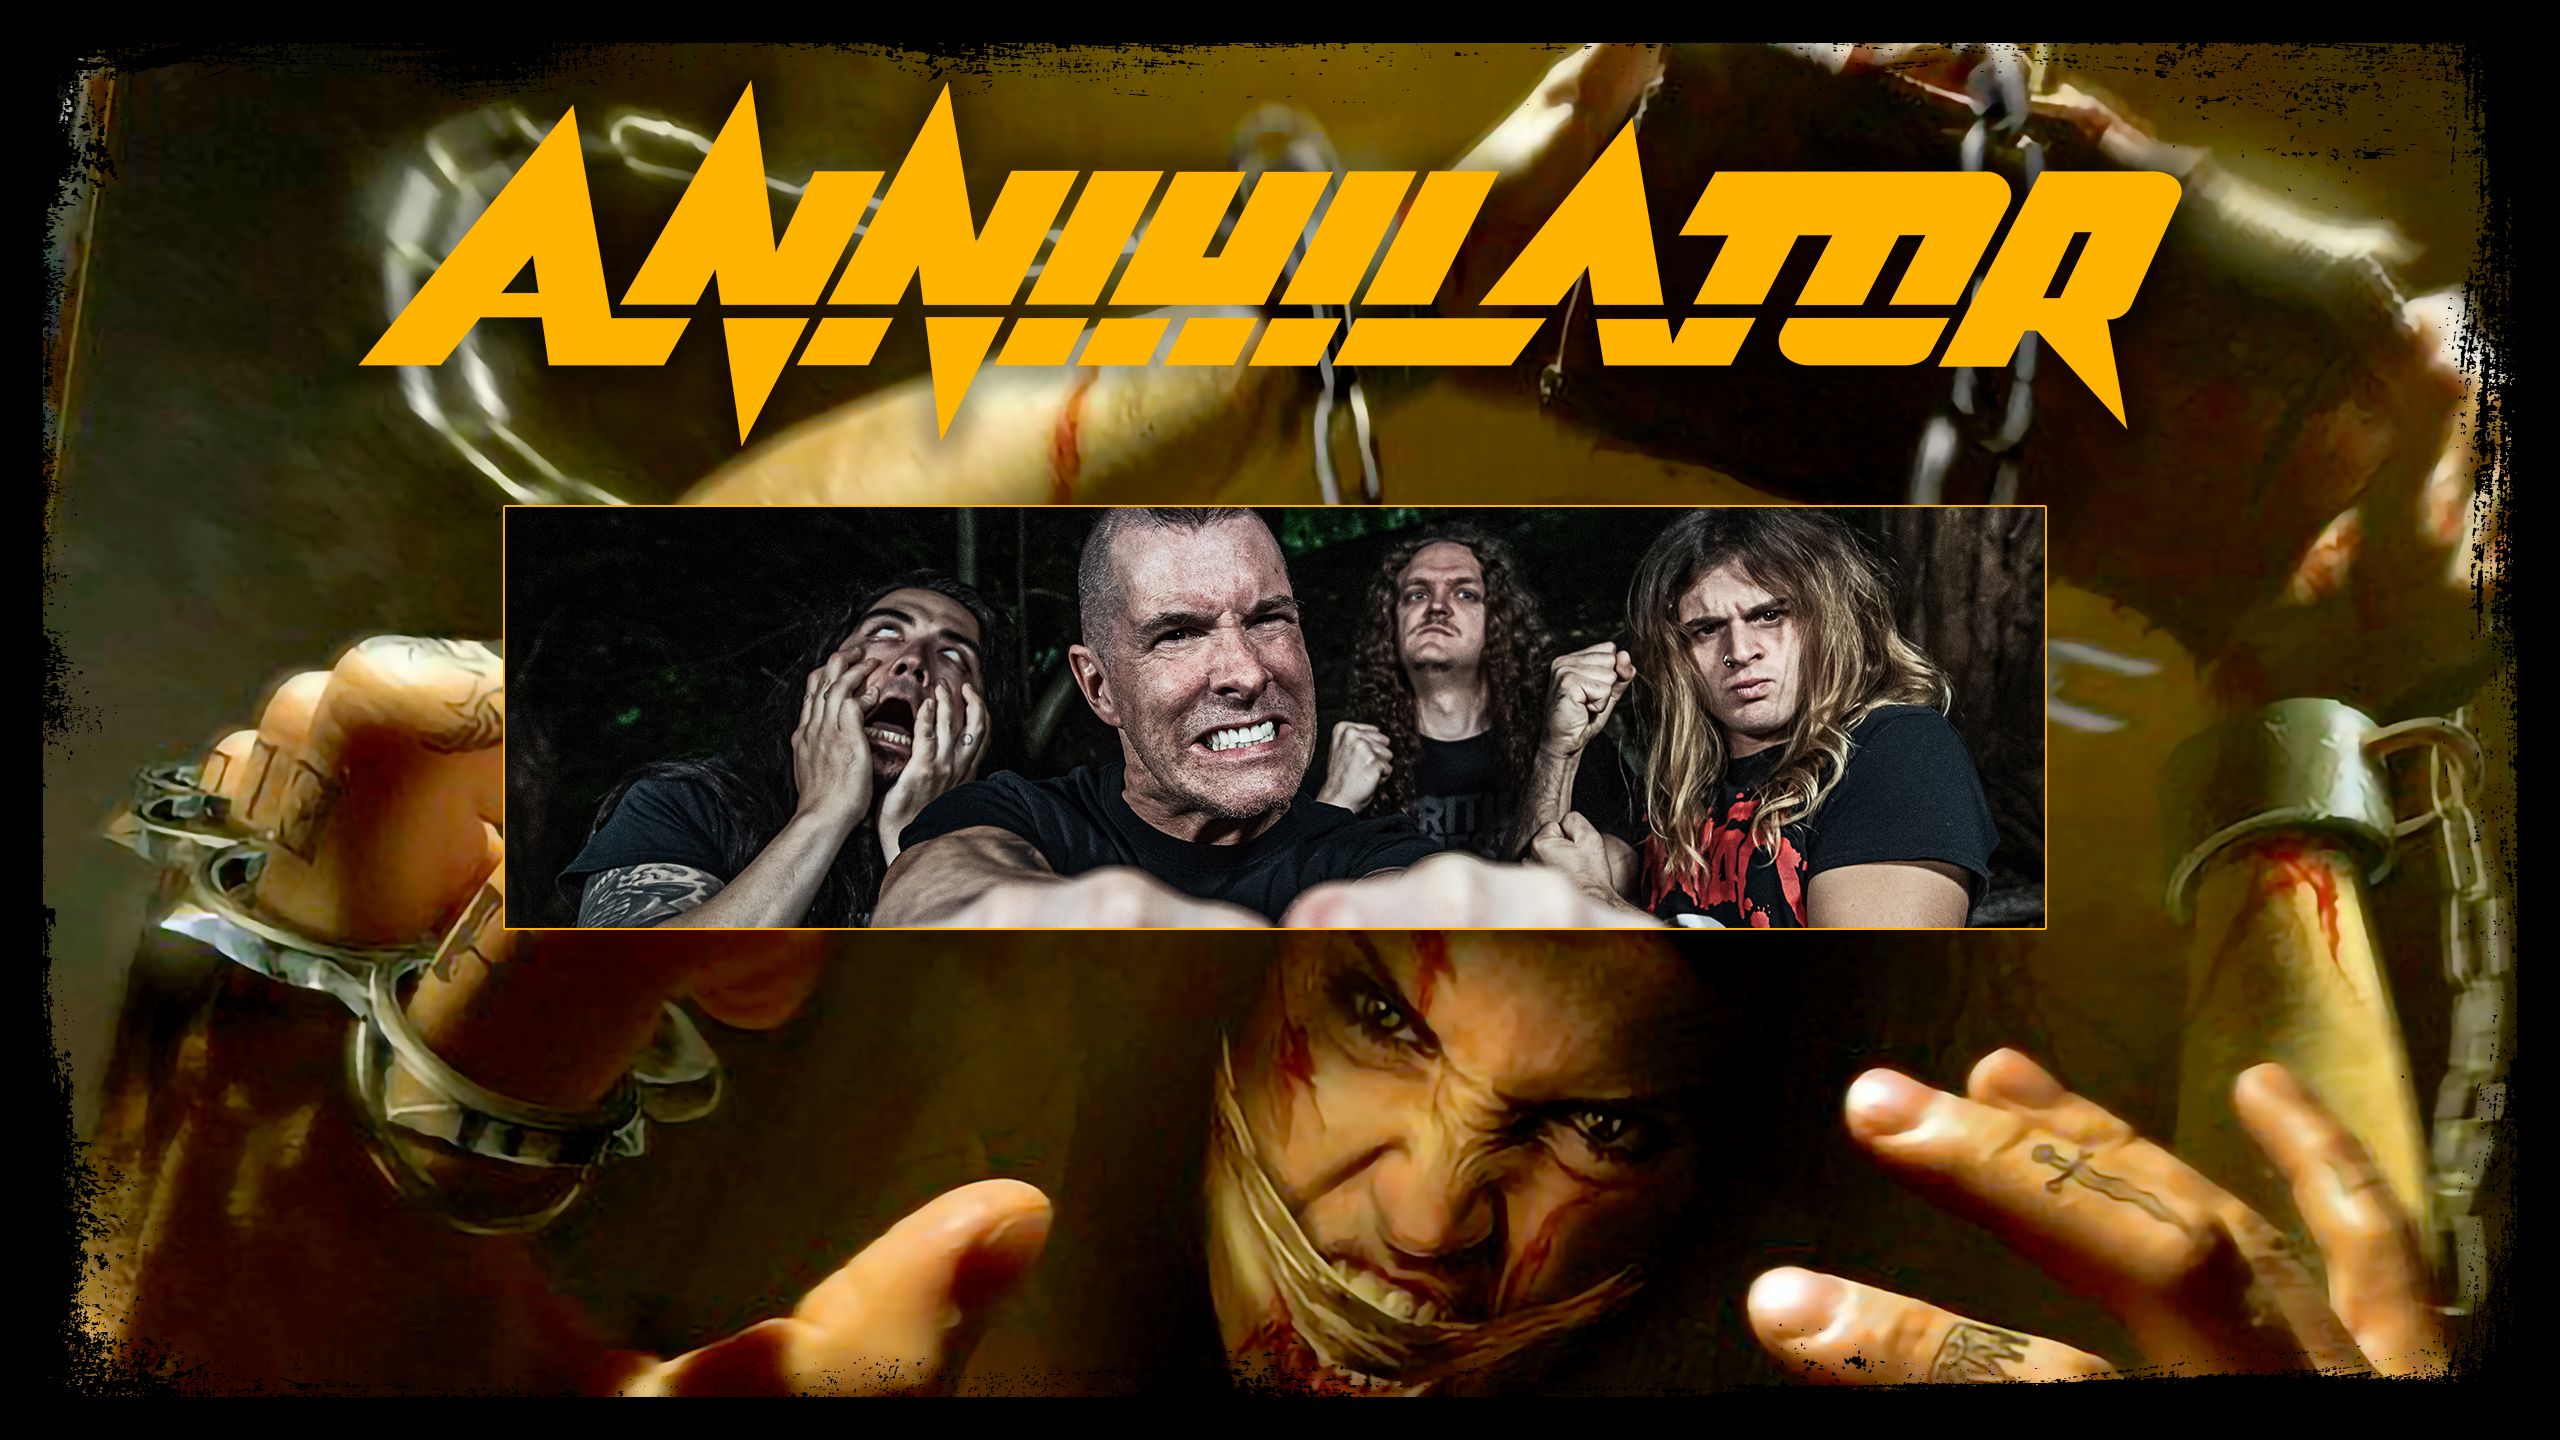 Annihilator youtube background new